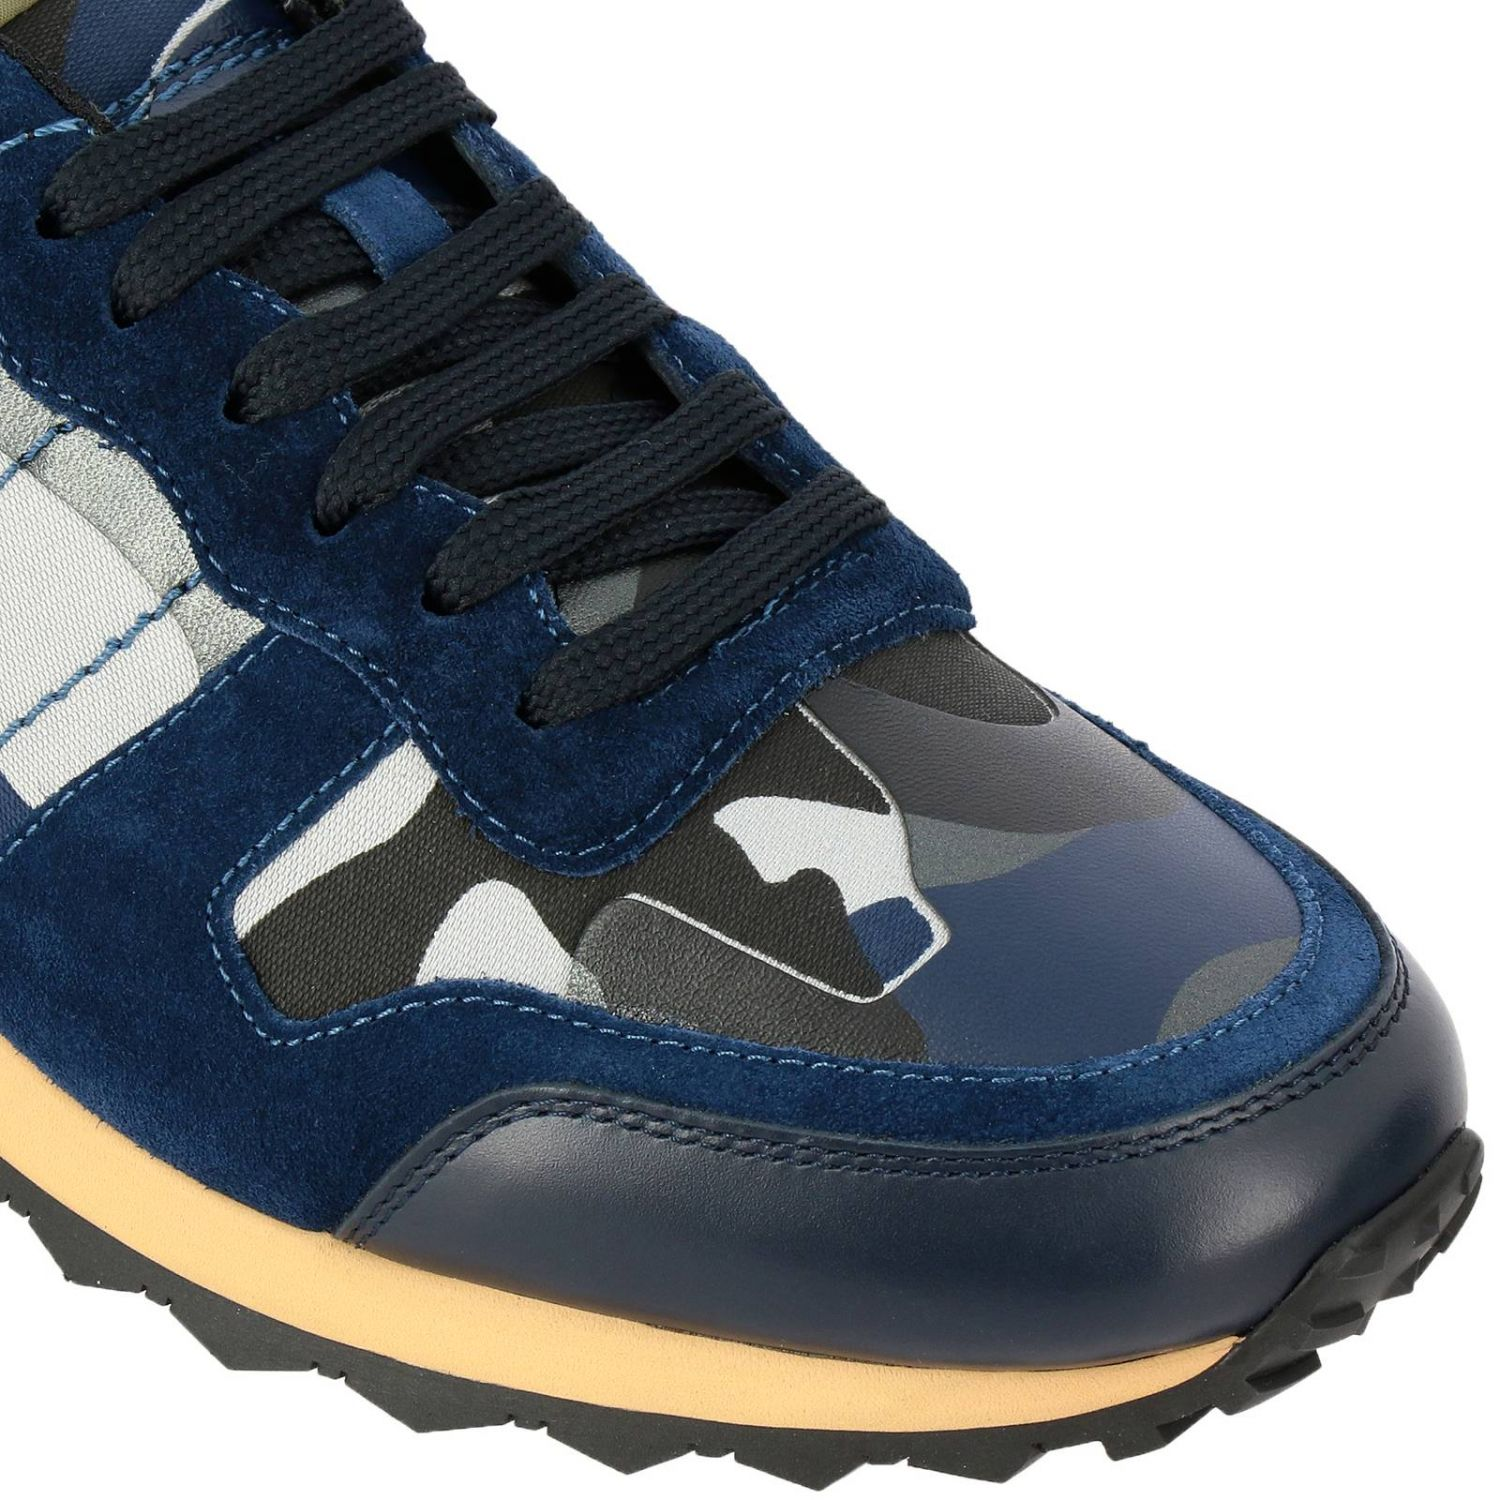 Valentino Garavani Rock runner camouflage suede and leather sneakers blue 3